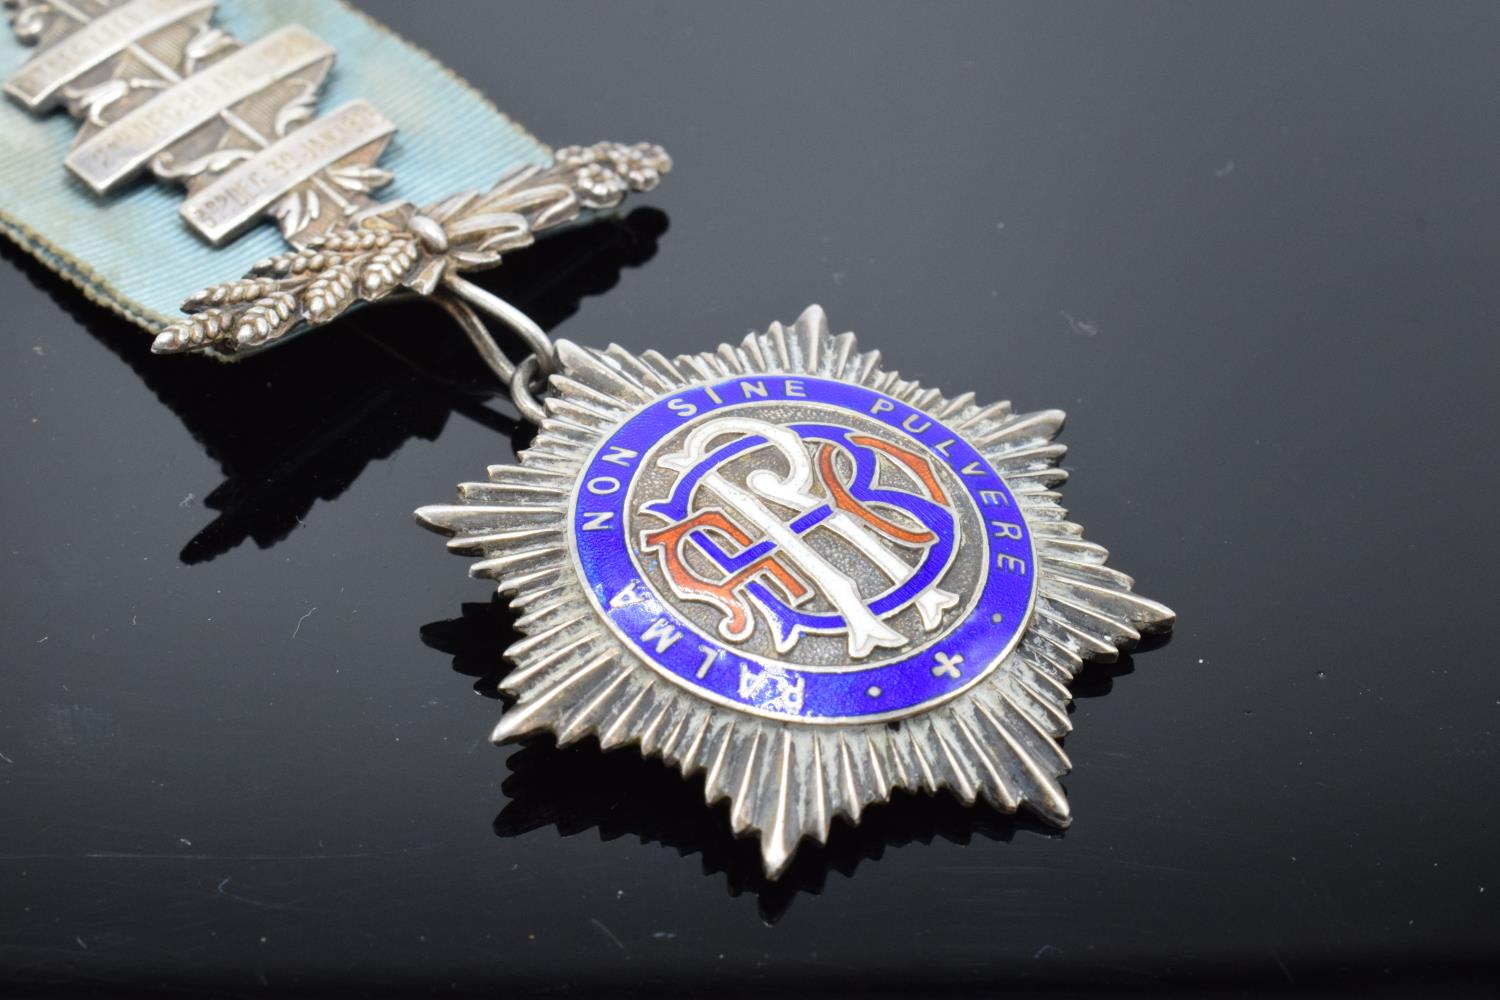 A silver medal and ribbon presented to Arthur J Thorne by the Royal Borough Lodge (GLE) Birmingham - Image 9 of 12